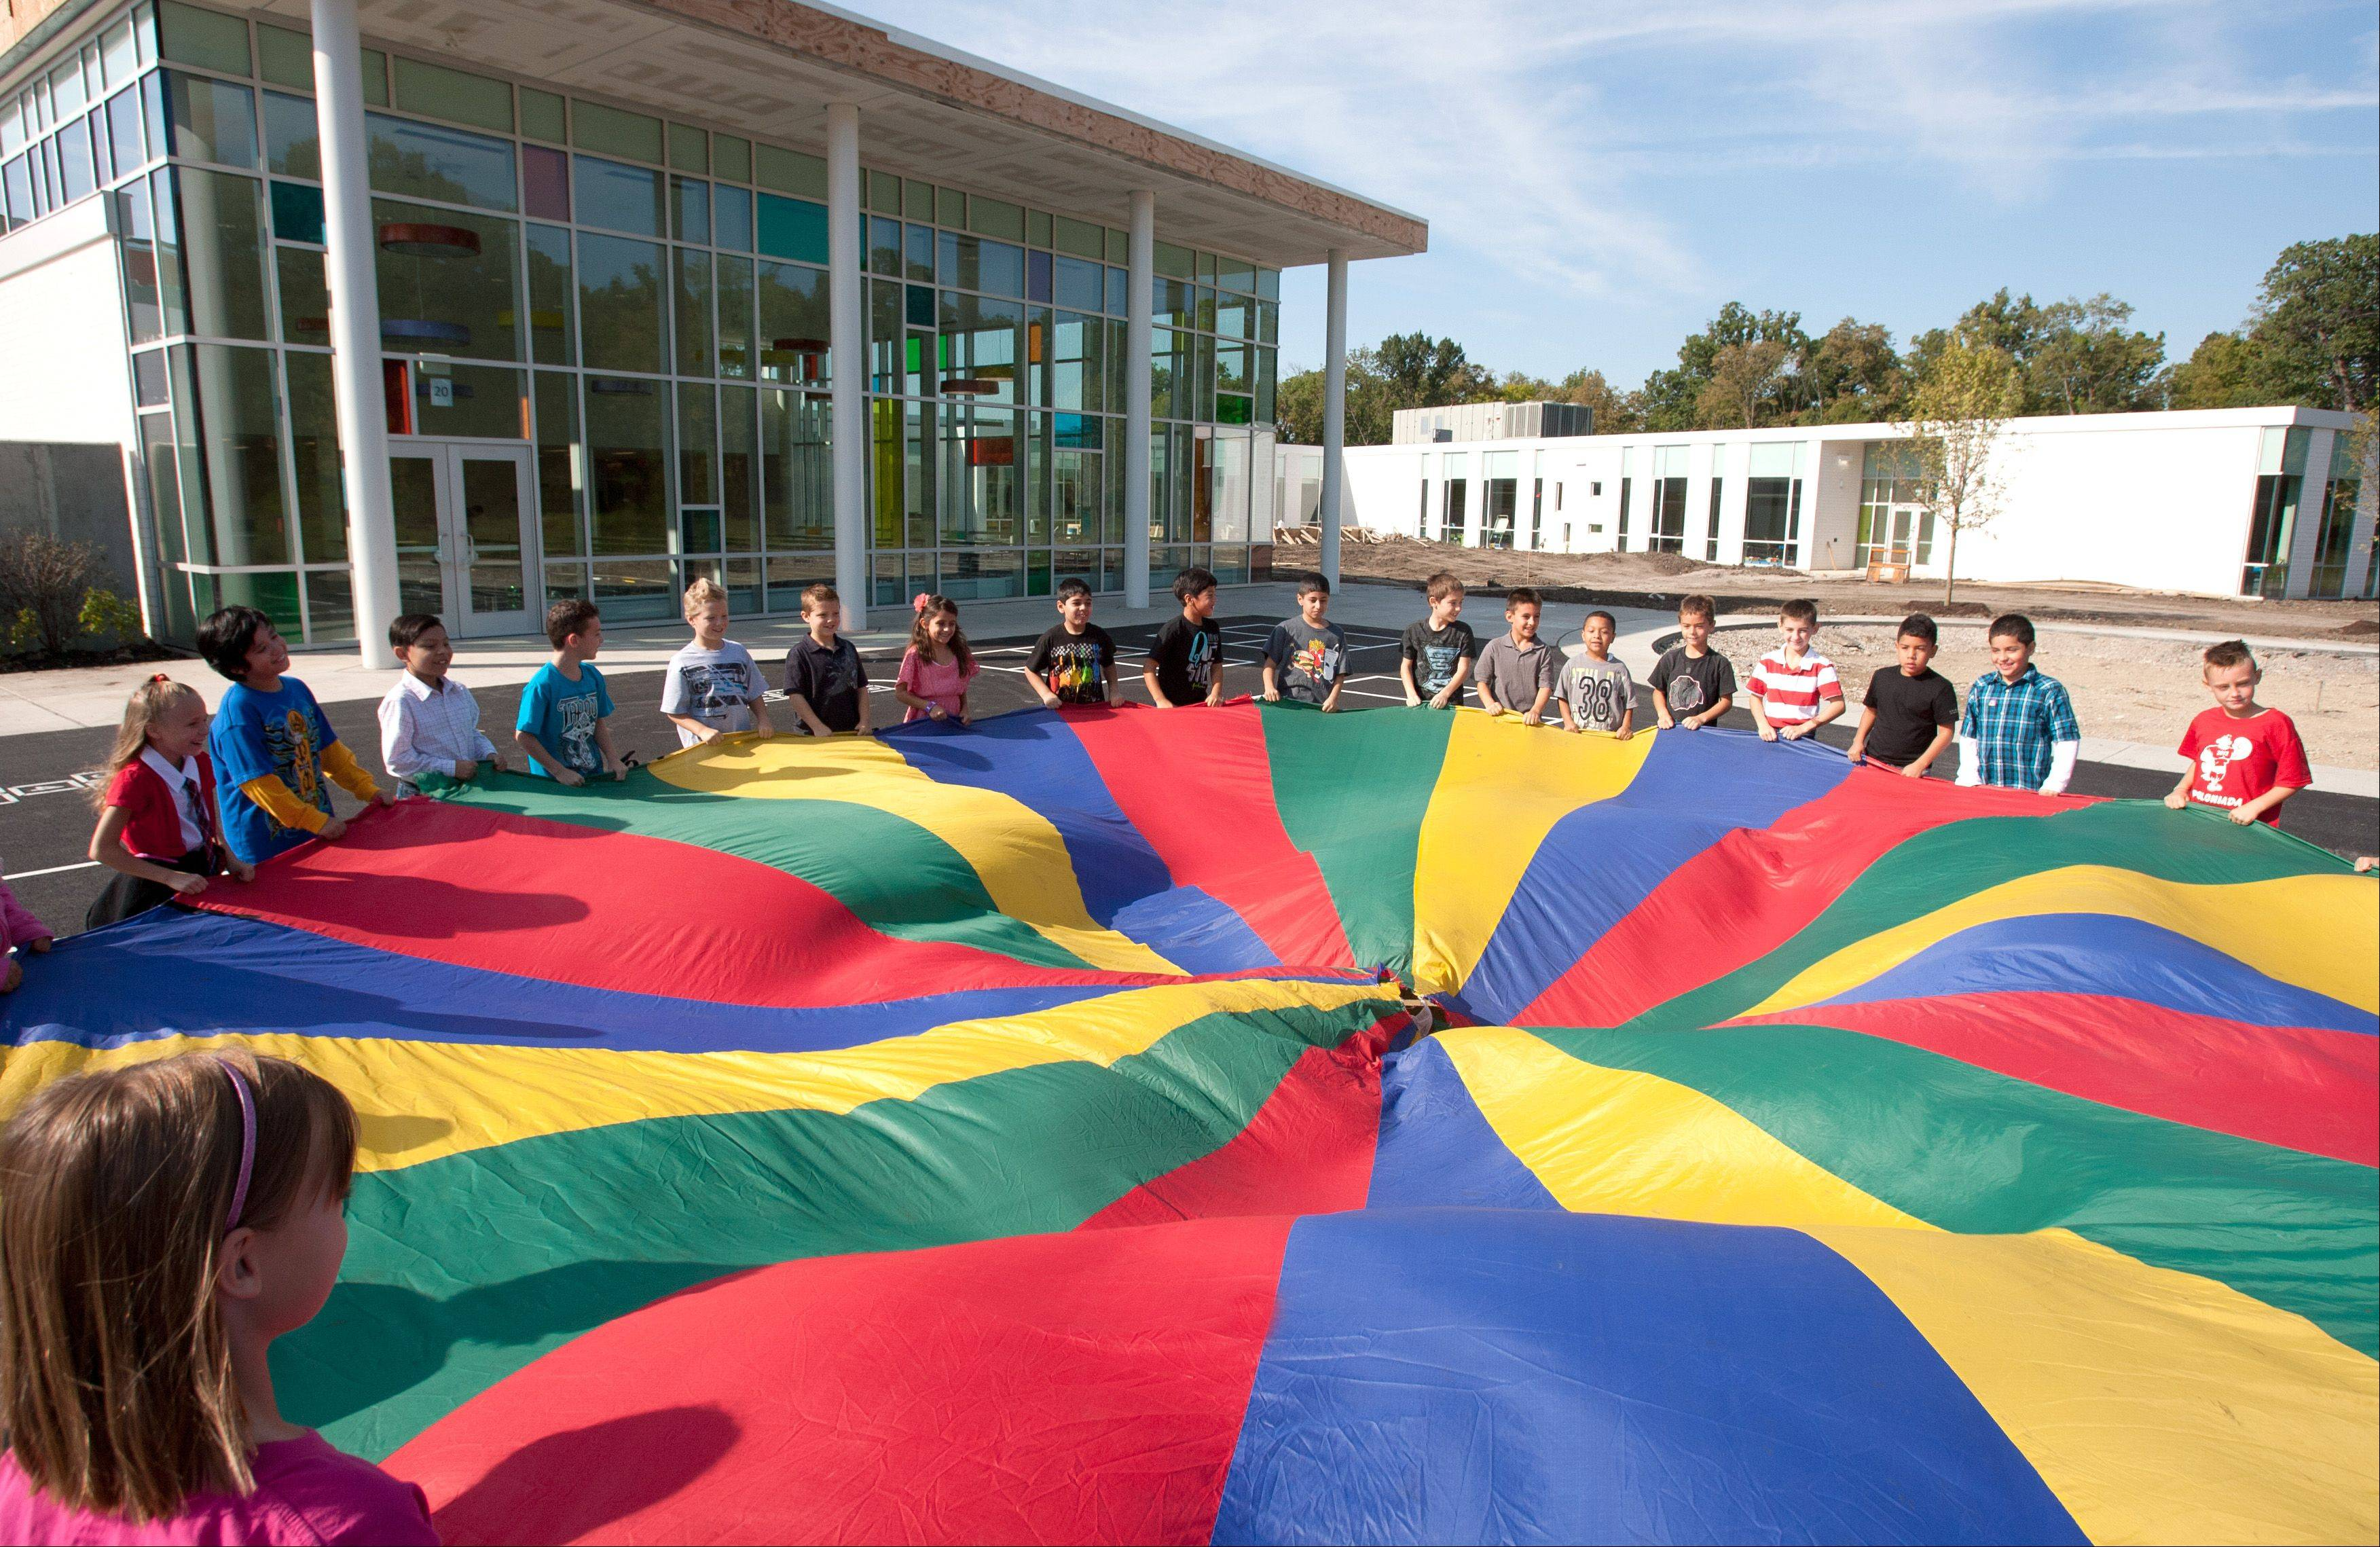 PE instructor Brendan Breault's class performs teamwork exercises in front of the newly constructed Johnson School, as Bensenville School District 2 merges four of its schools into two.